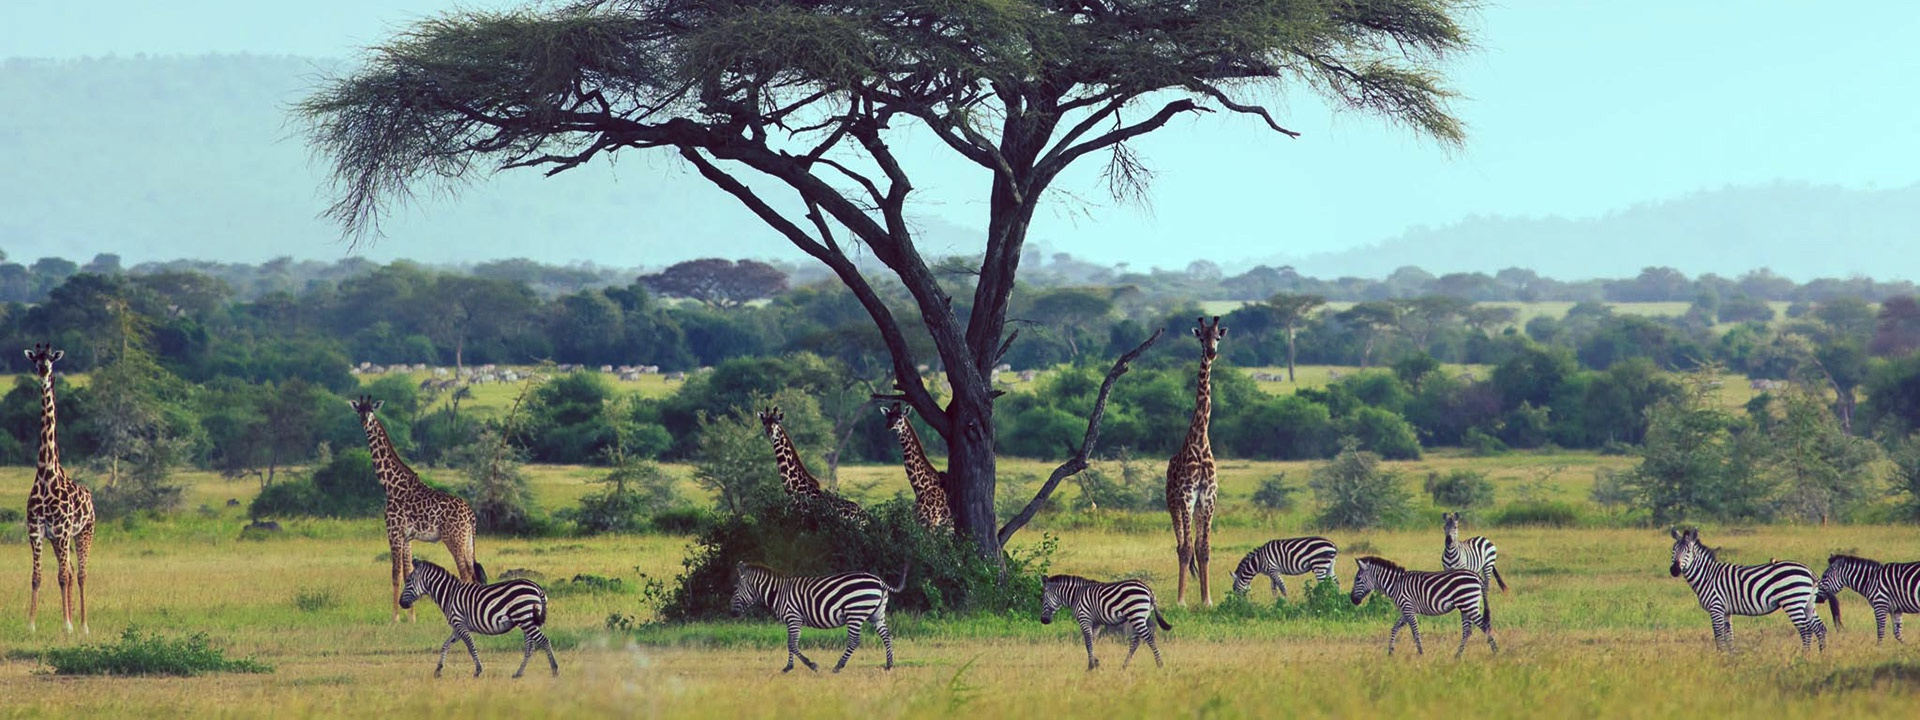 Africa's Smartest Safari Trends – And Biggest Threats